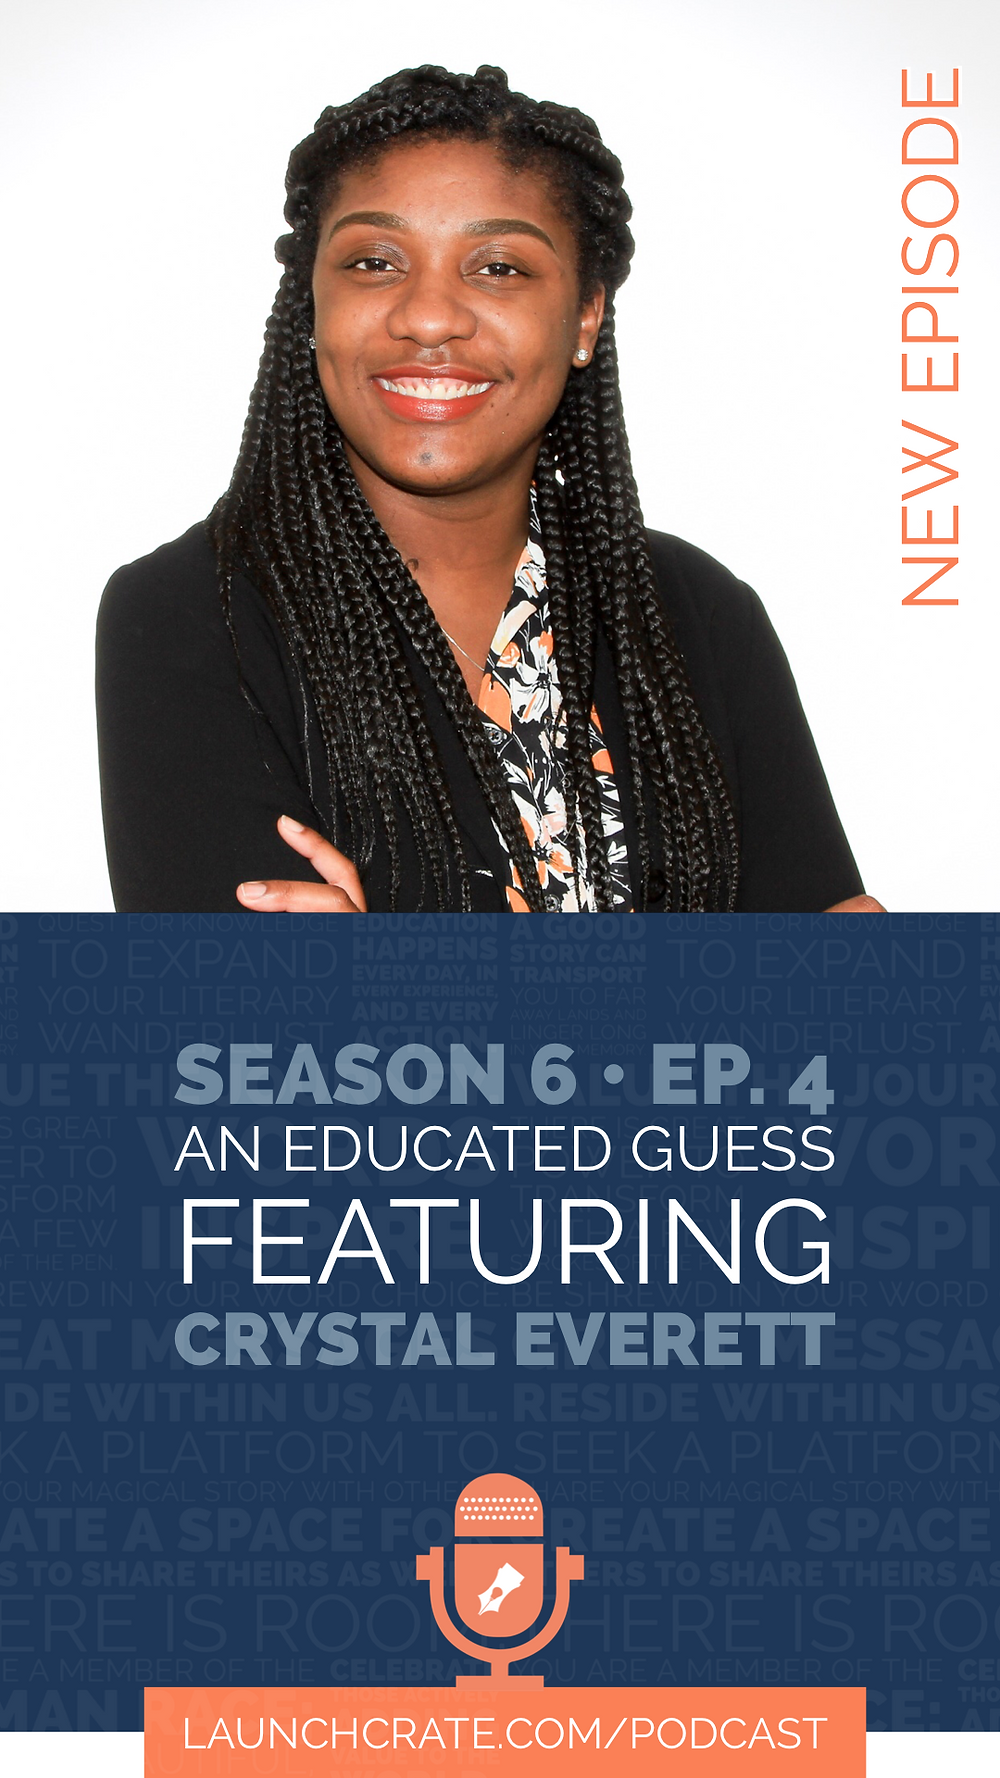 Podcast Season 6, Episode 4, with Crystal Everett